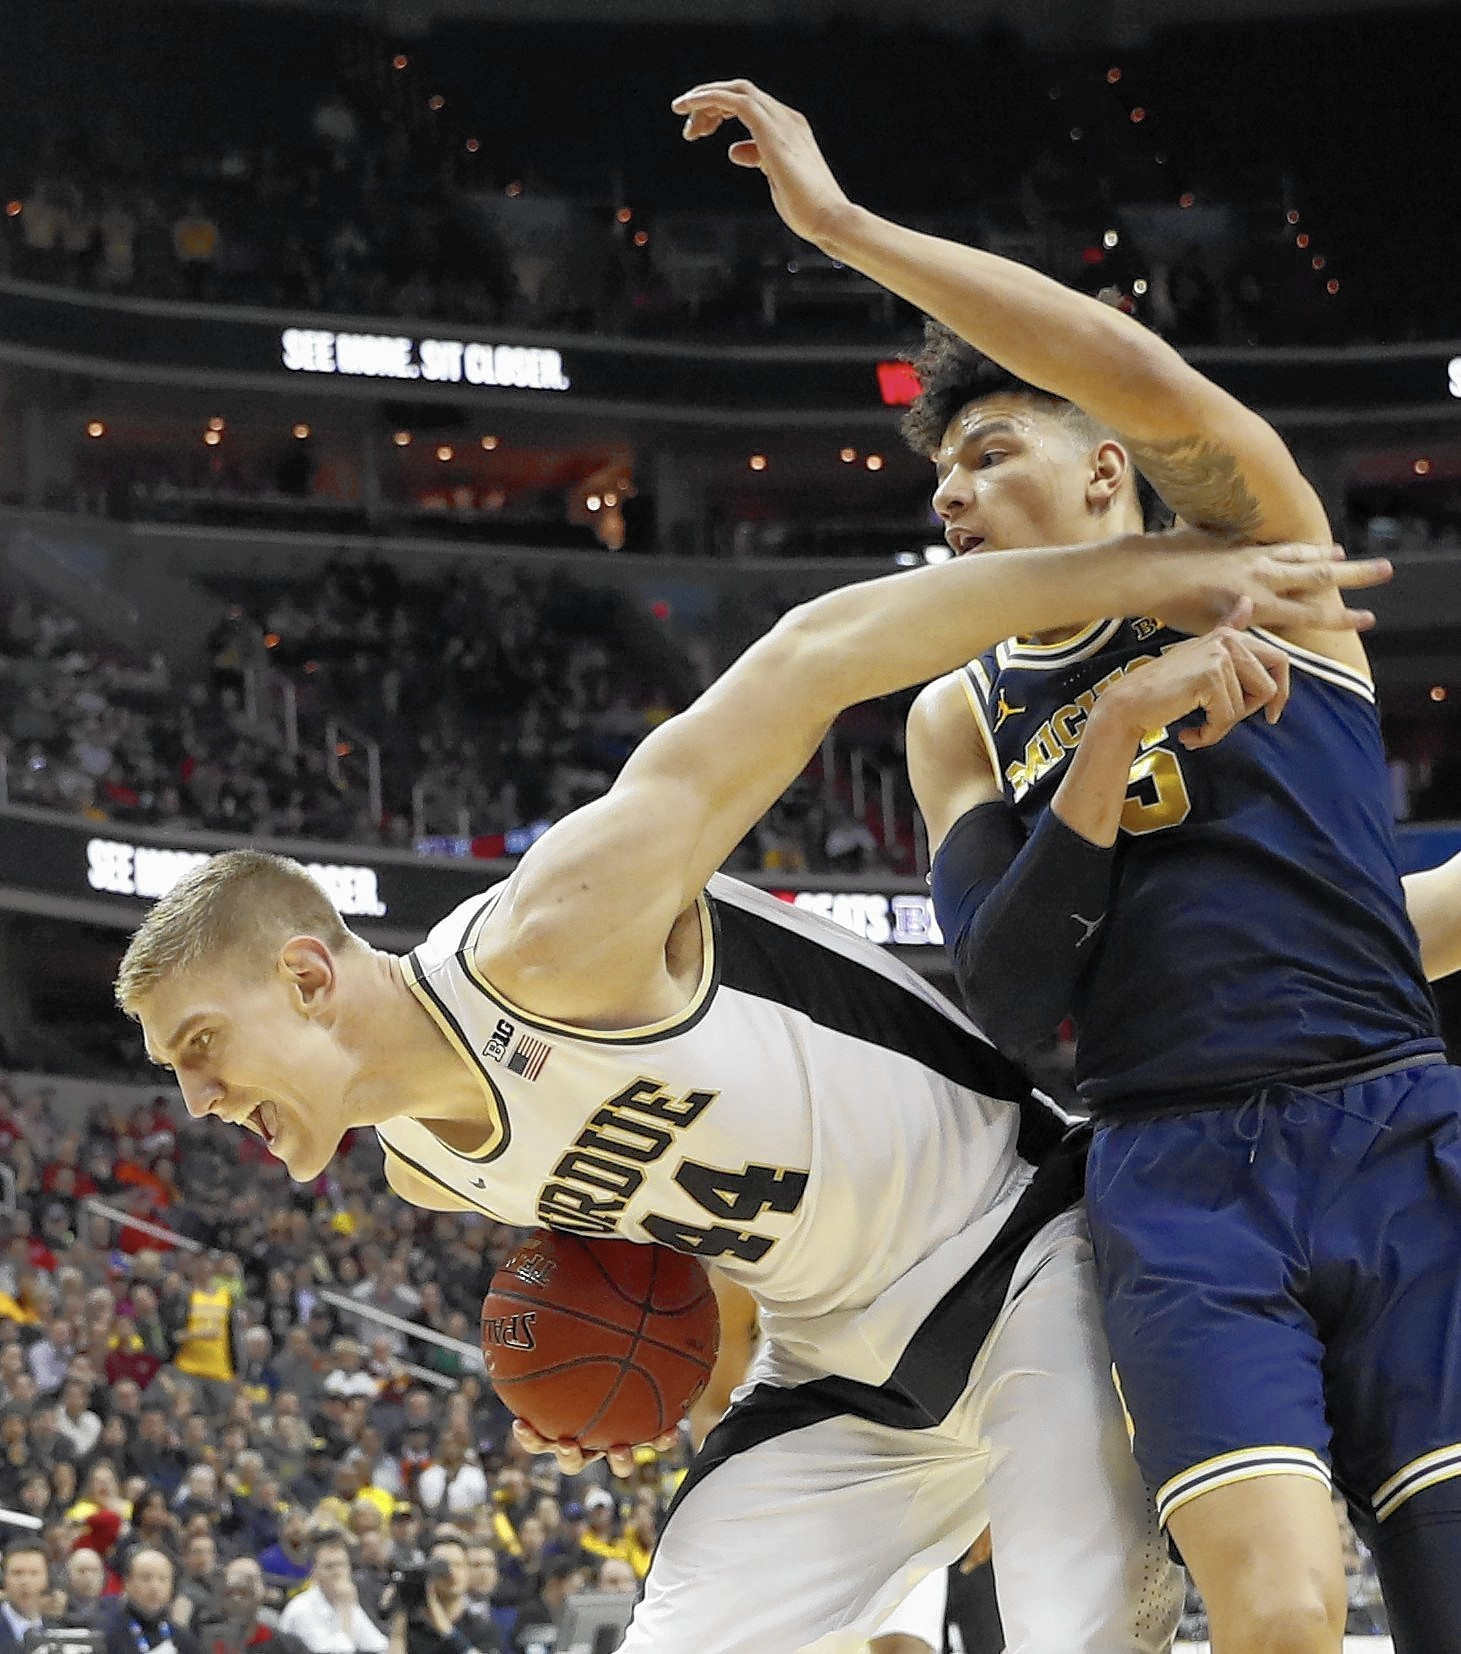 Michigan Ends Stressful Week With Strong Effort To Upset Purdue In Overtime  - Post-Tribune